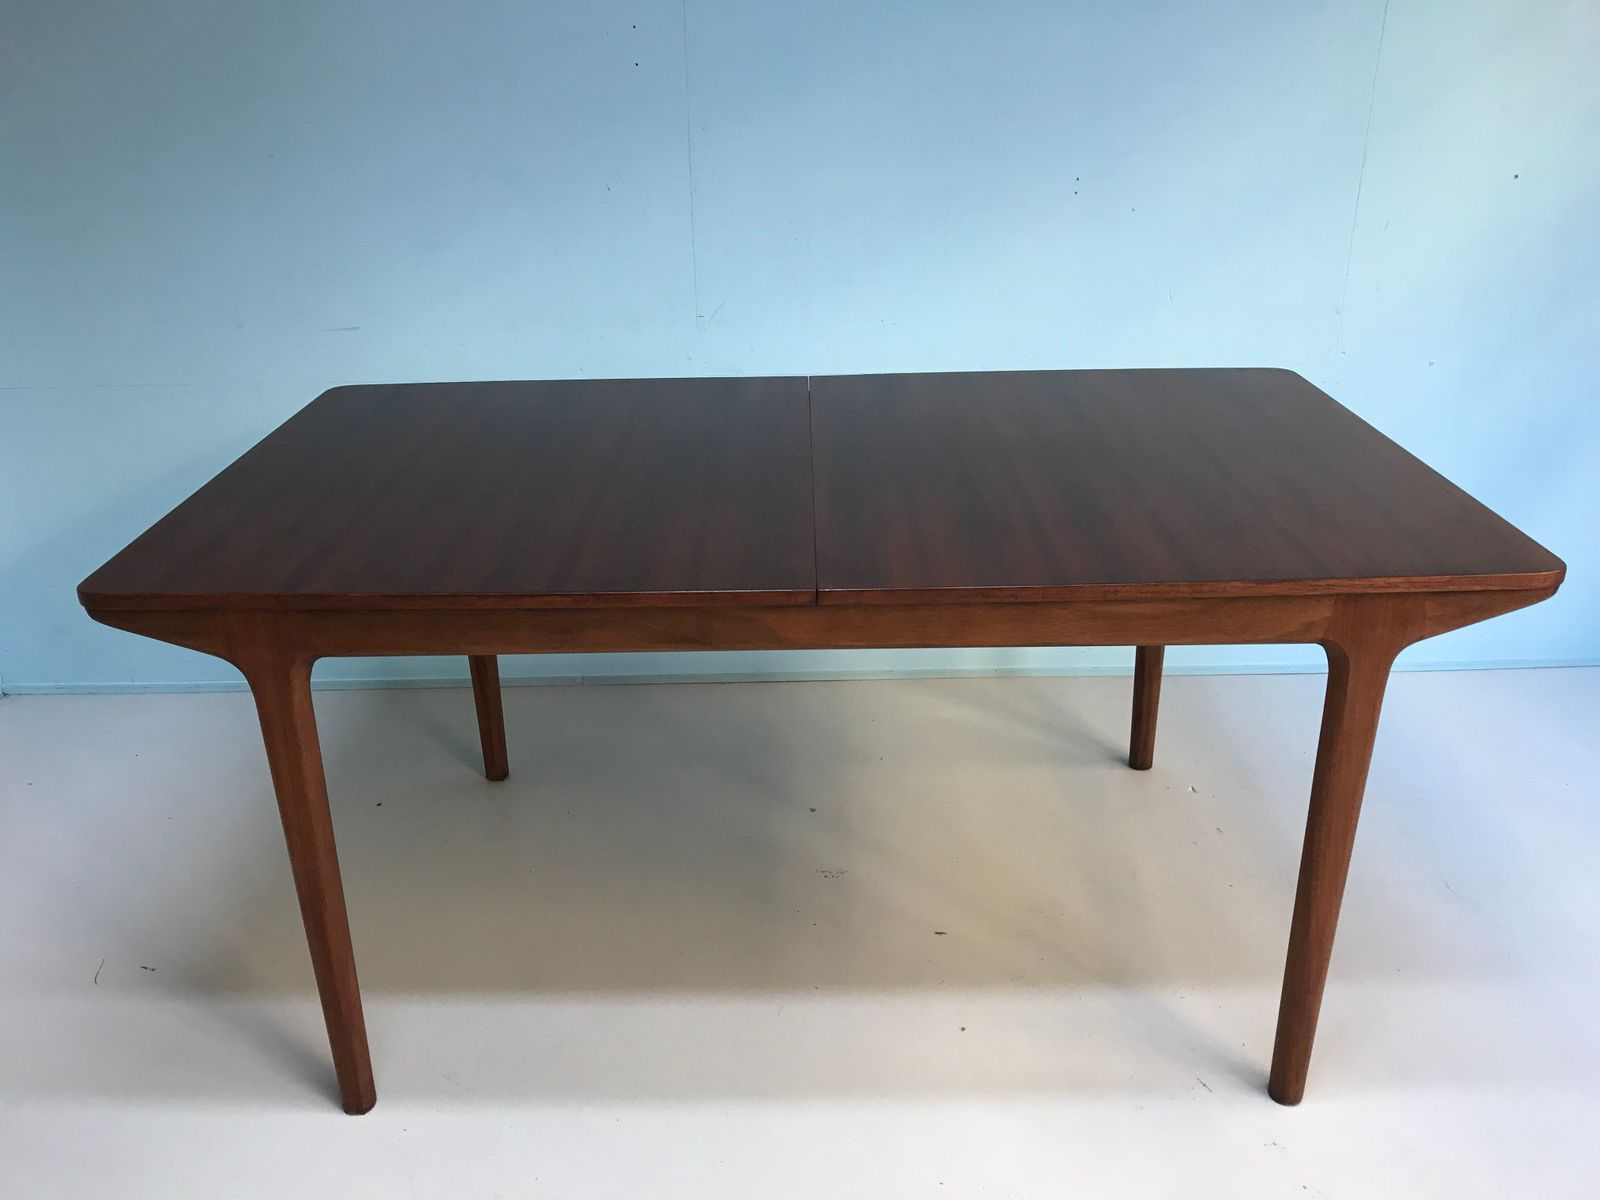 Mid Century Rosewood Dining Table from Mcintosh for sale  : mid century rosewood dining table from mcintosh 1 from www.pamono.com size 1600 x 1200 jpeg 64kB